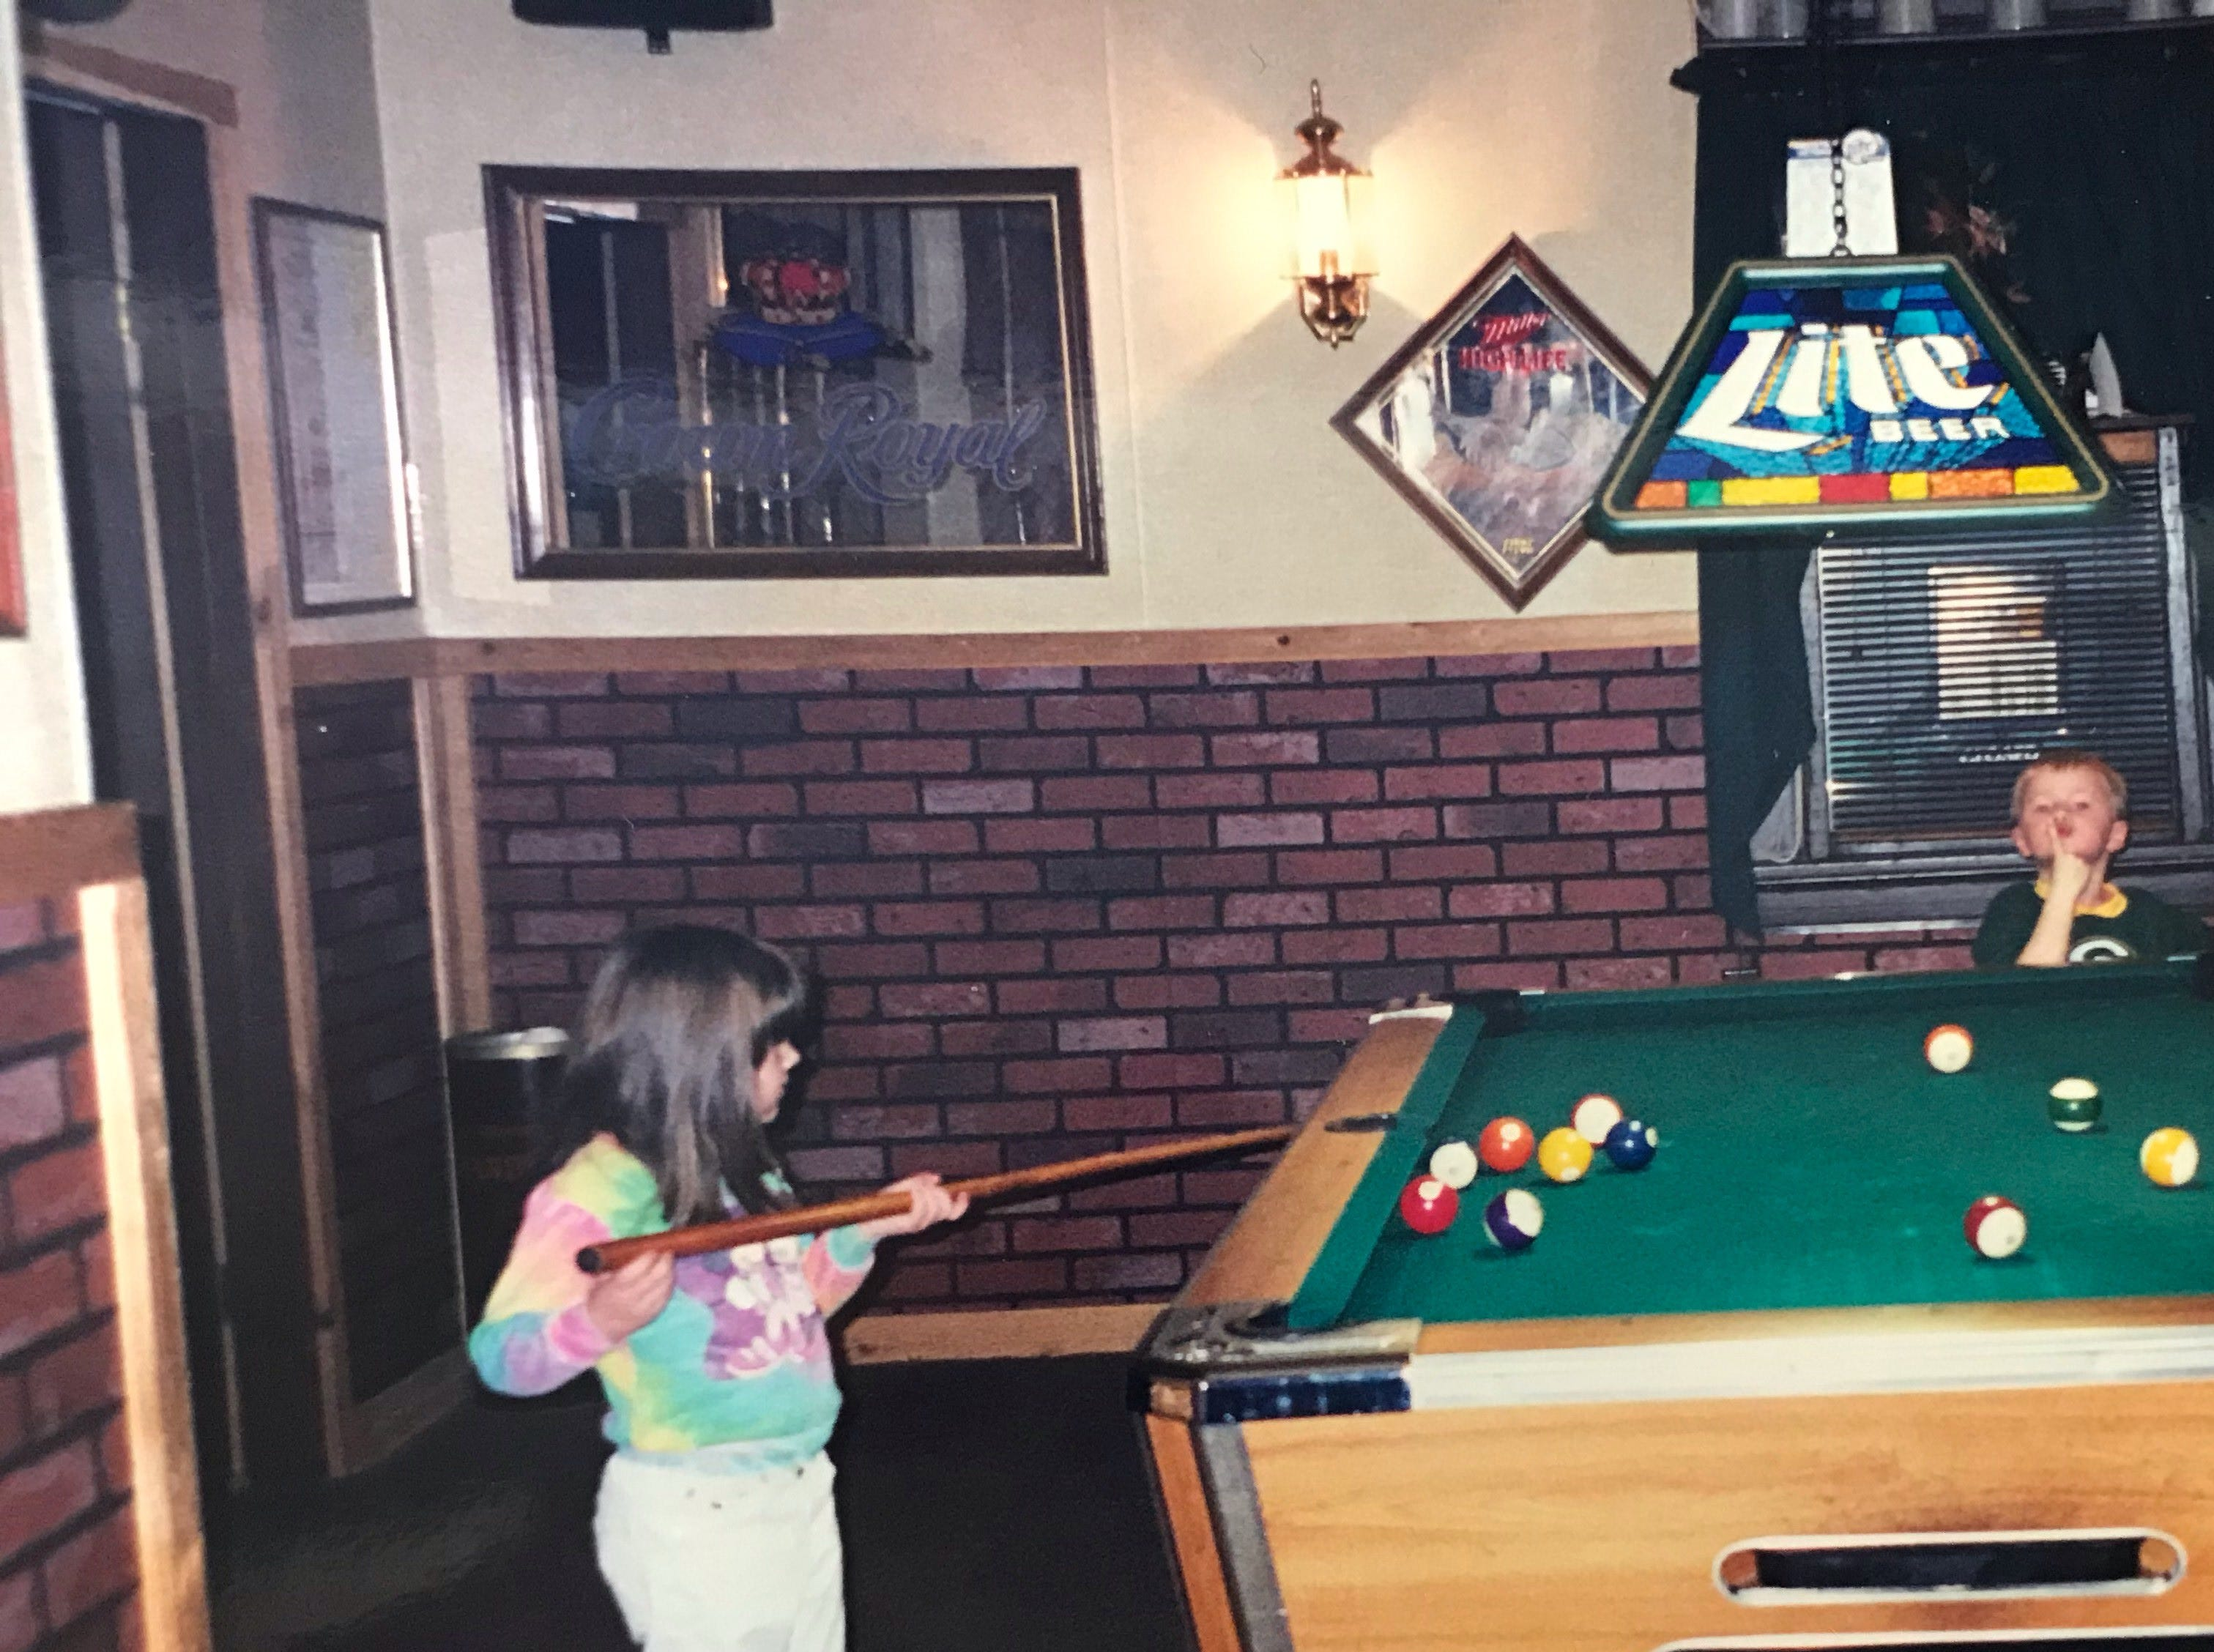 Children playing pool at Cheers Bar. Mary Jane Opper said it was a family-friendly and generational place.